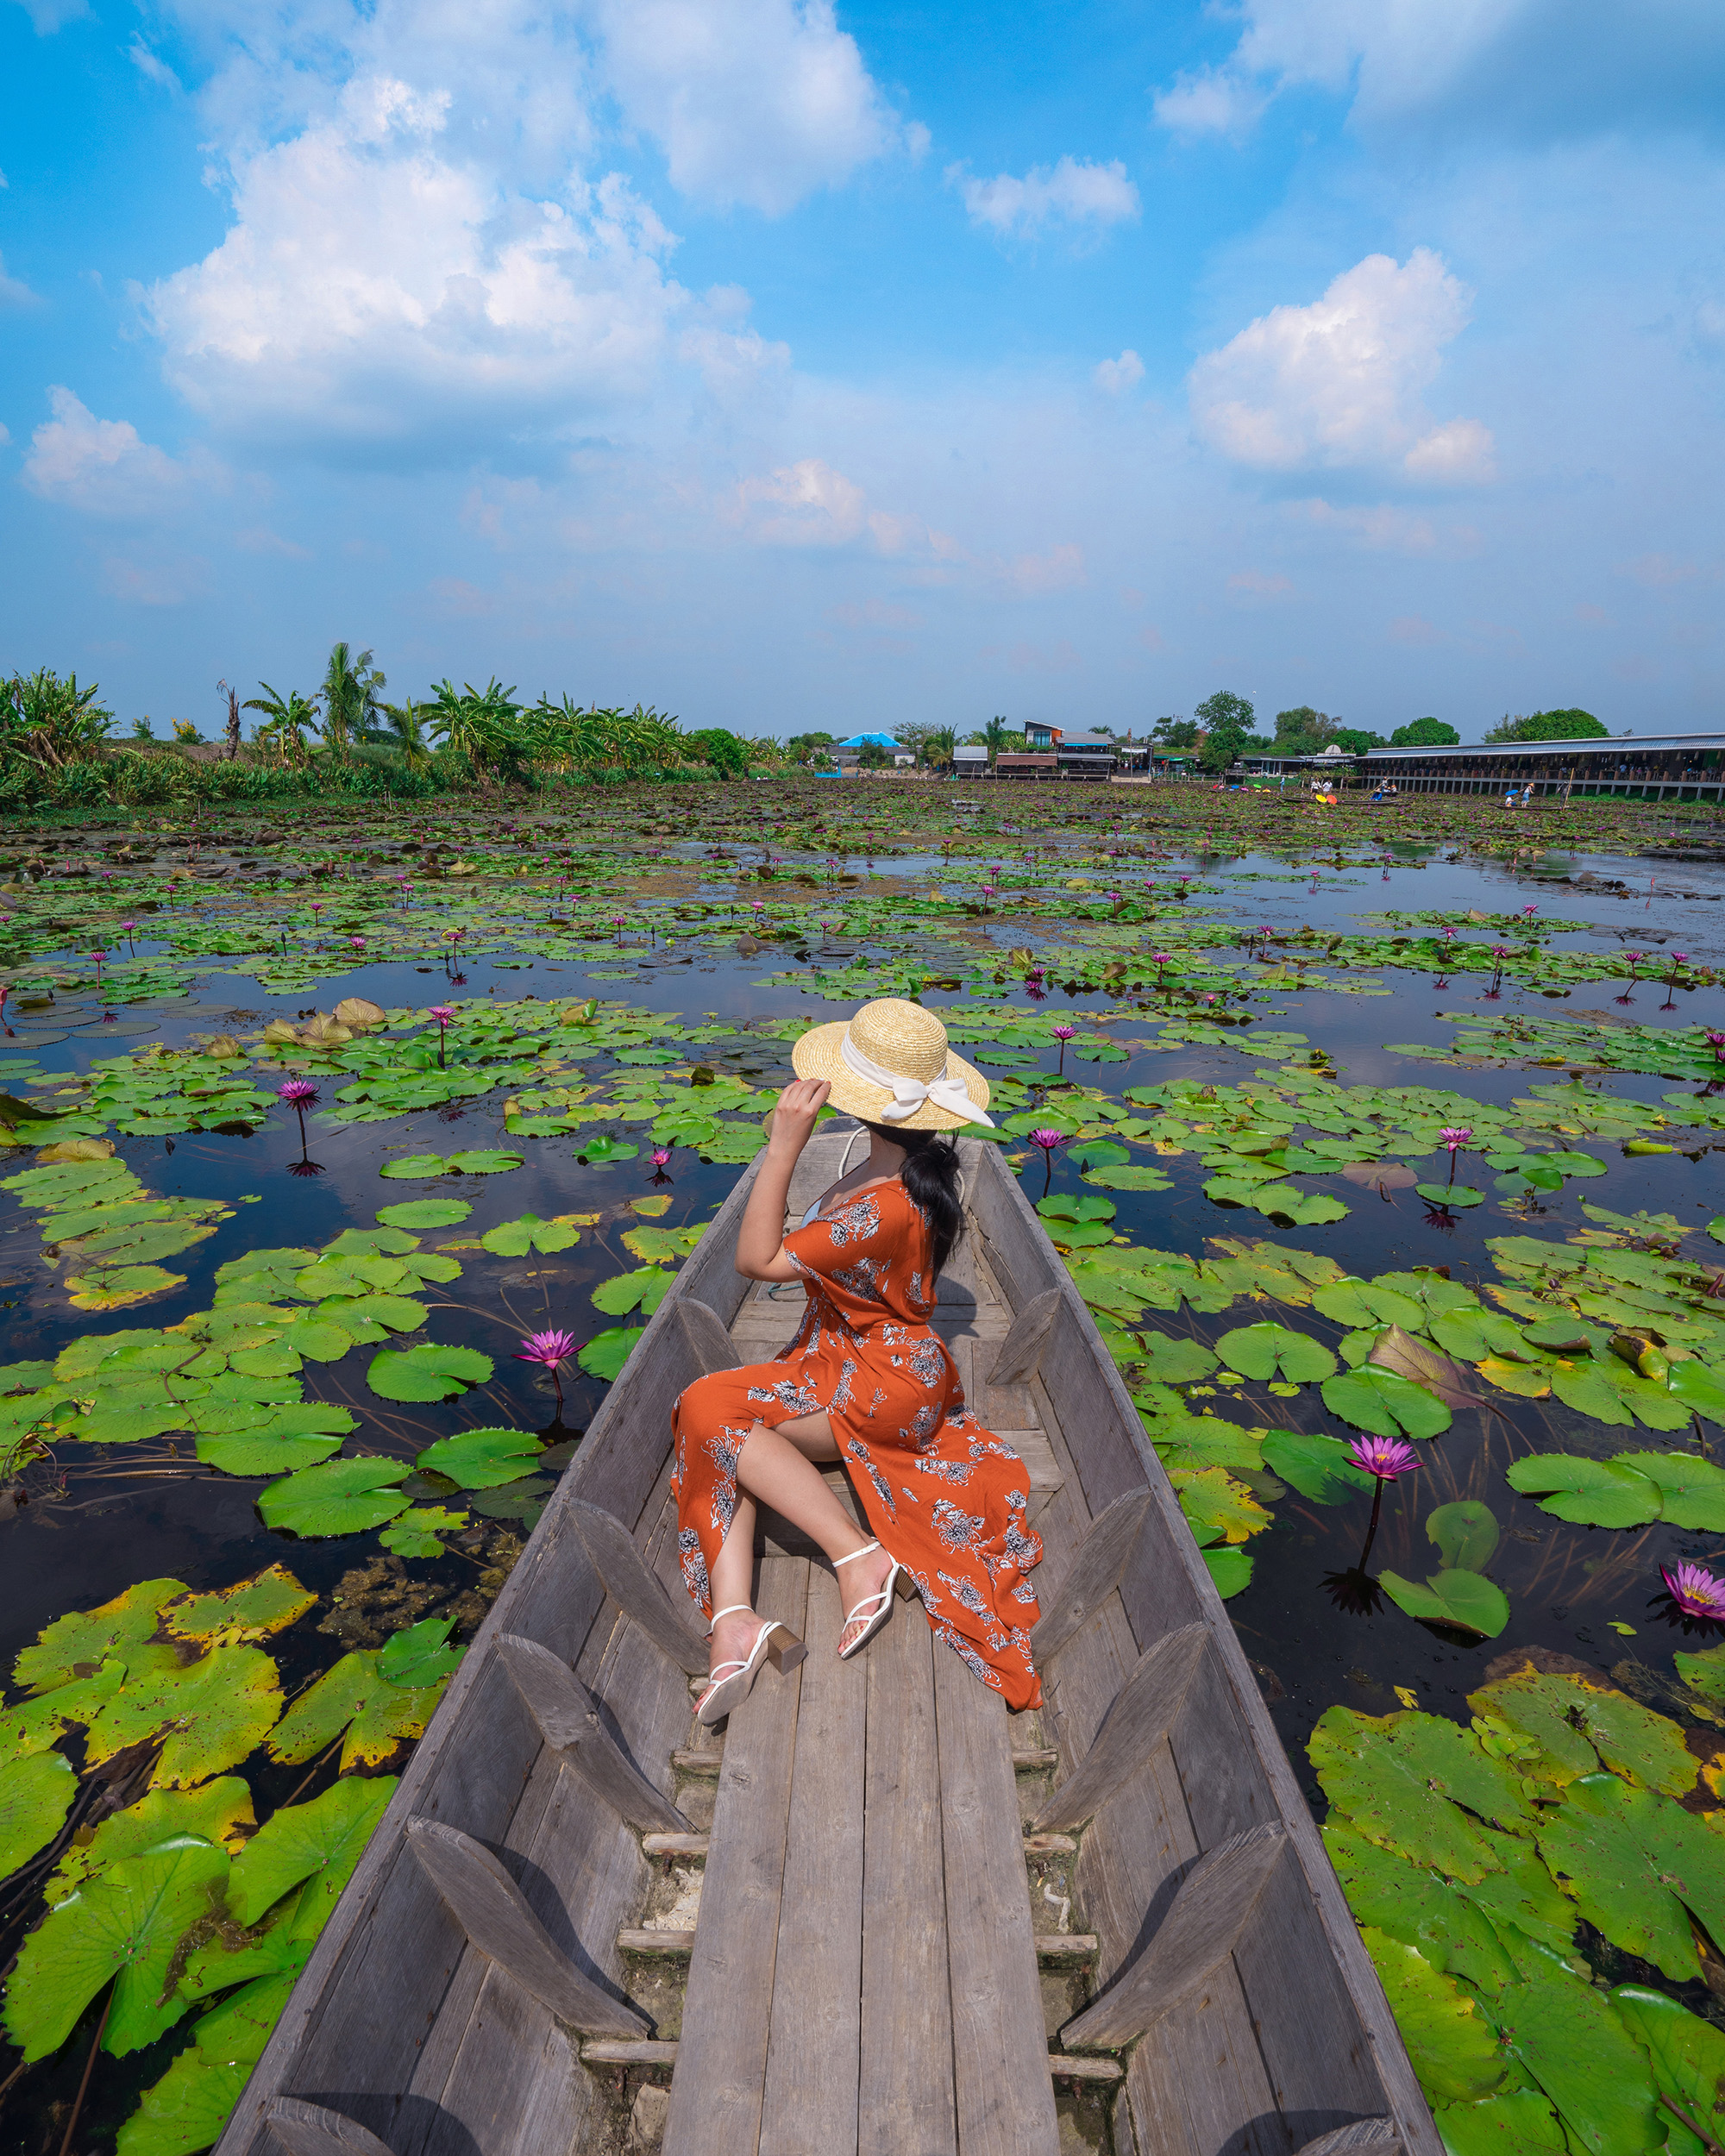 Taking an afternoon boat ride through the lily pond at Red Lotus Floating Market.